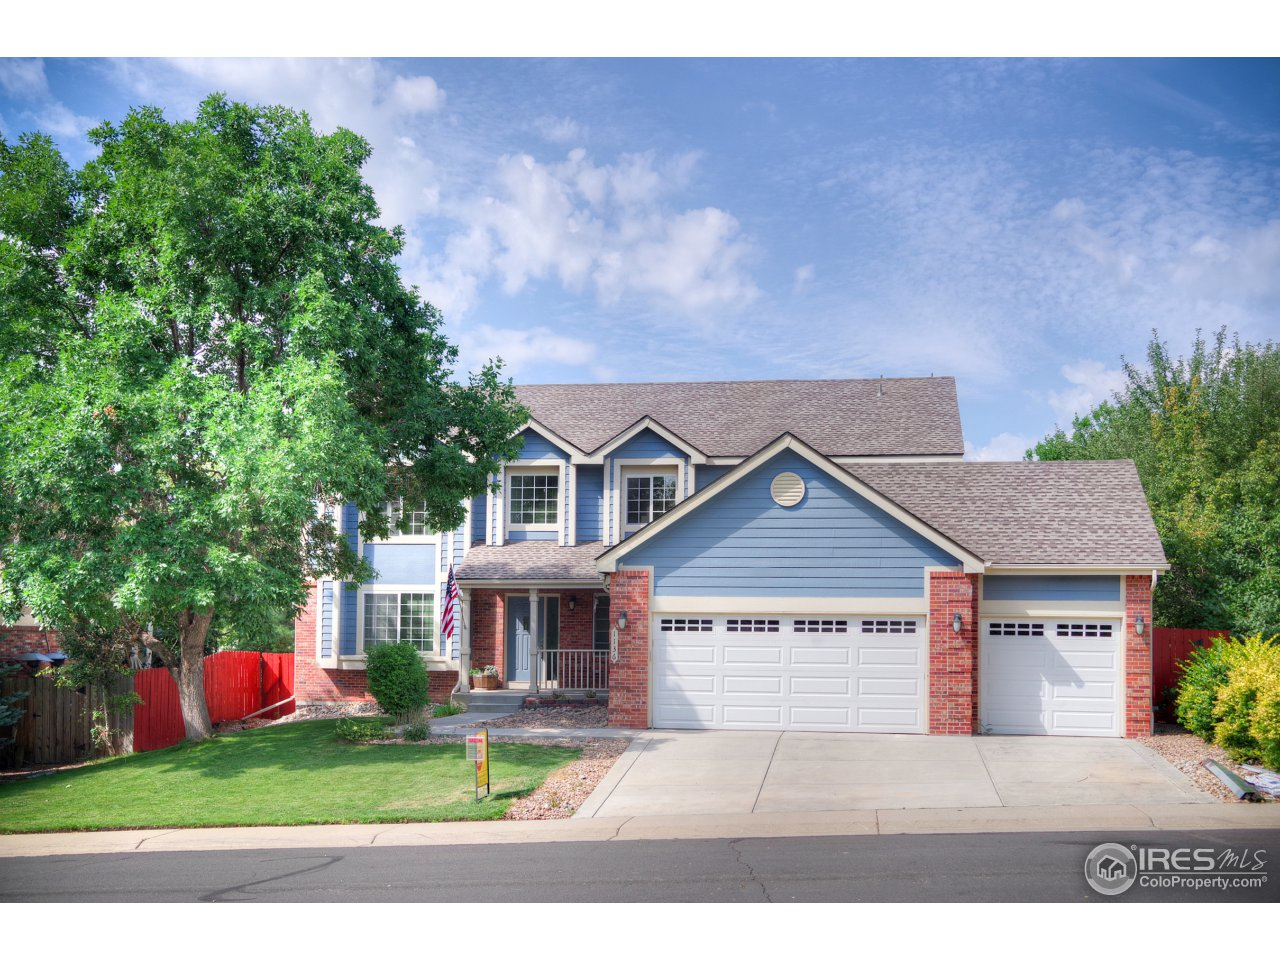 1136 Larch Ct, Broomfield, CO 80020